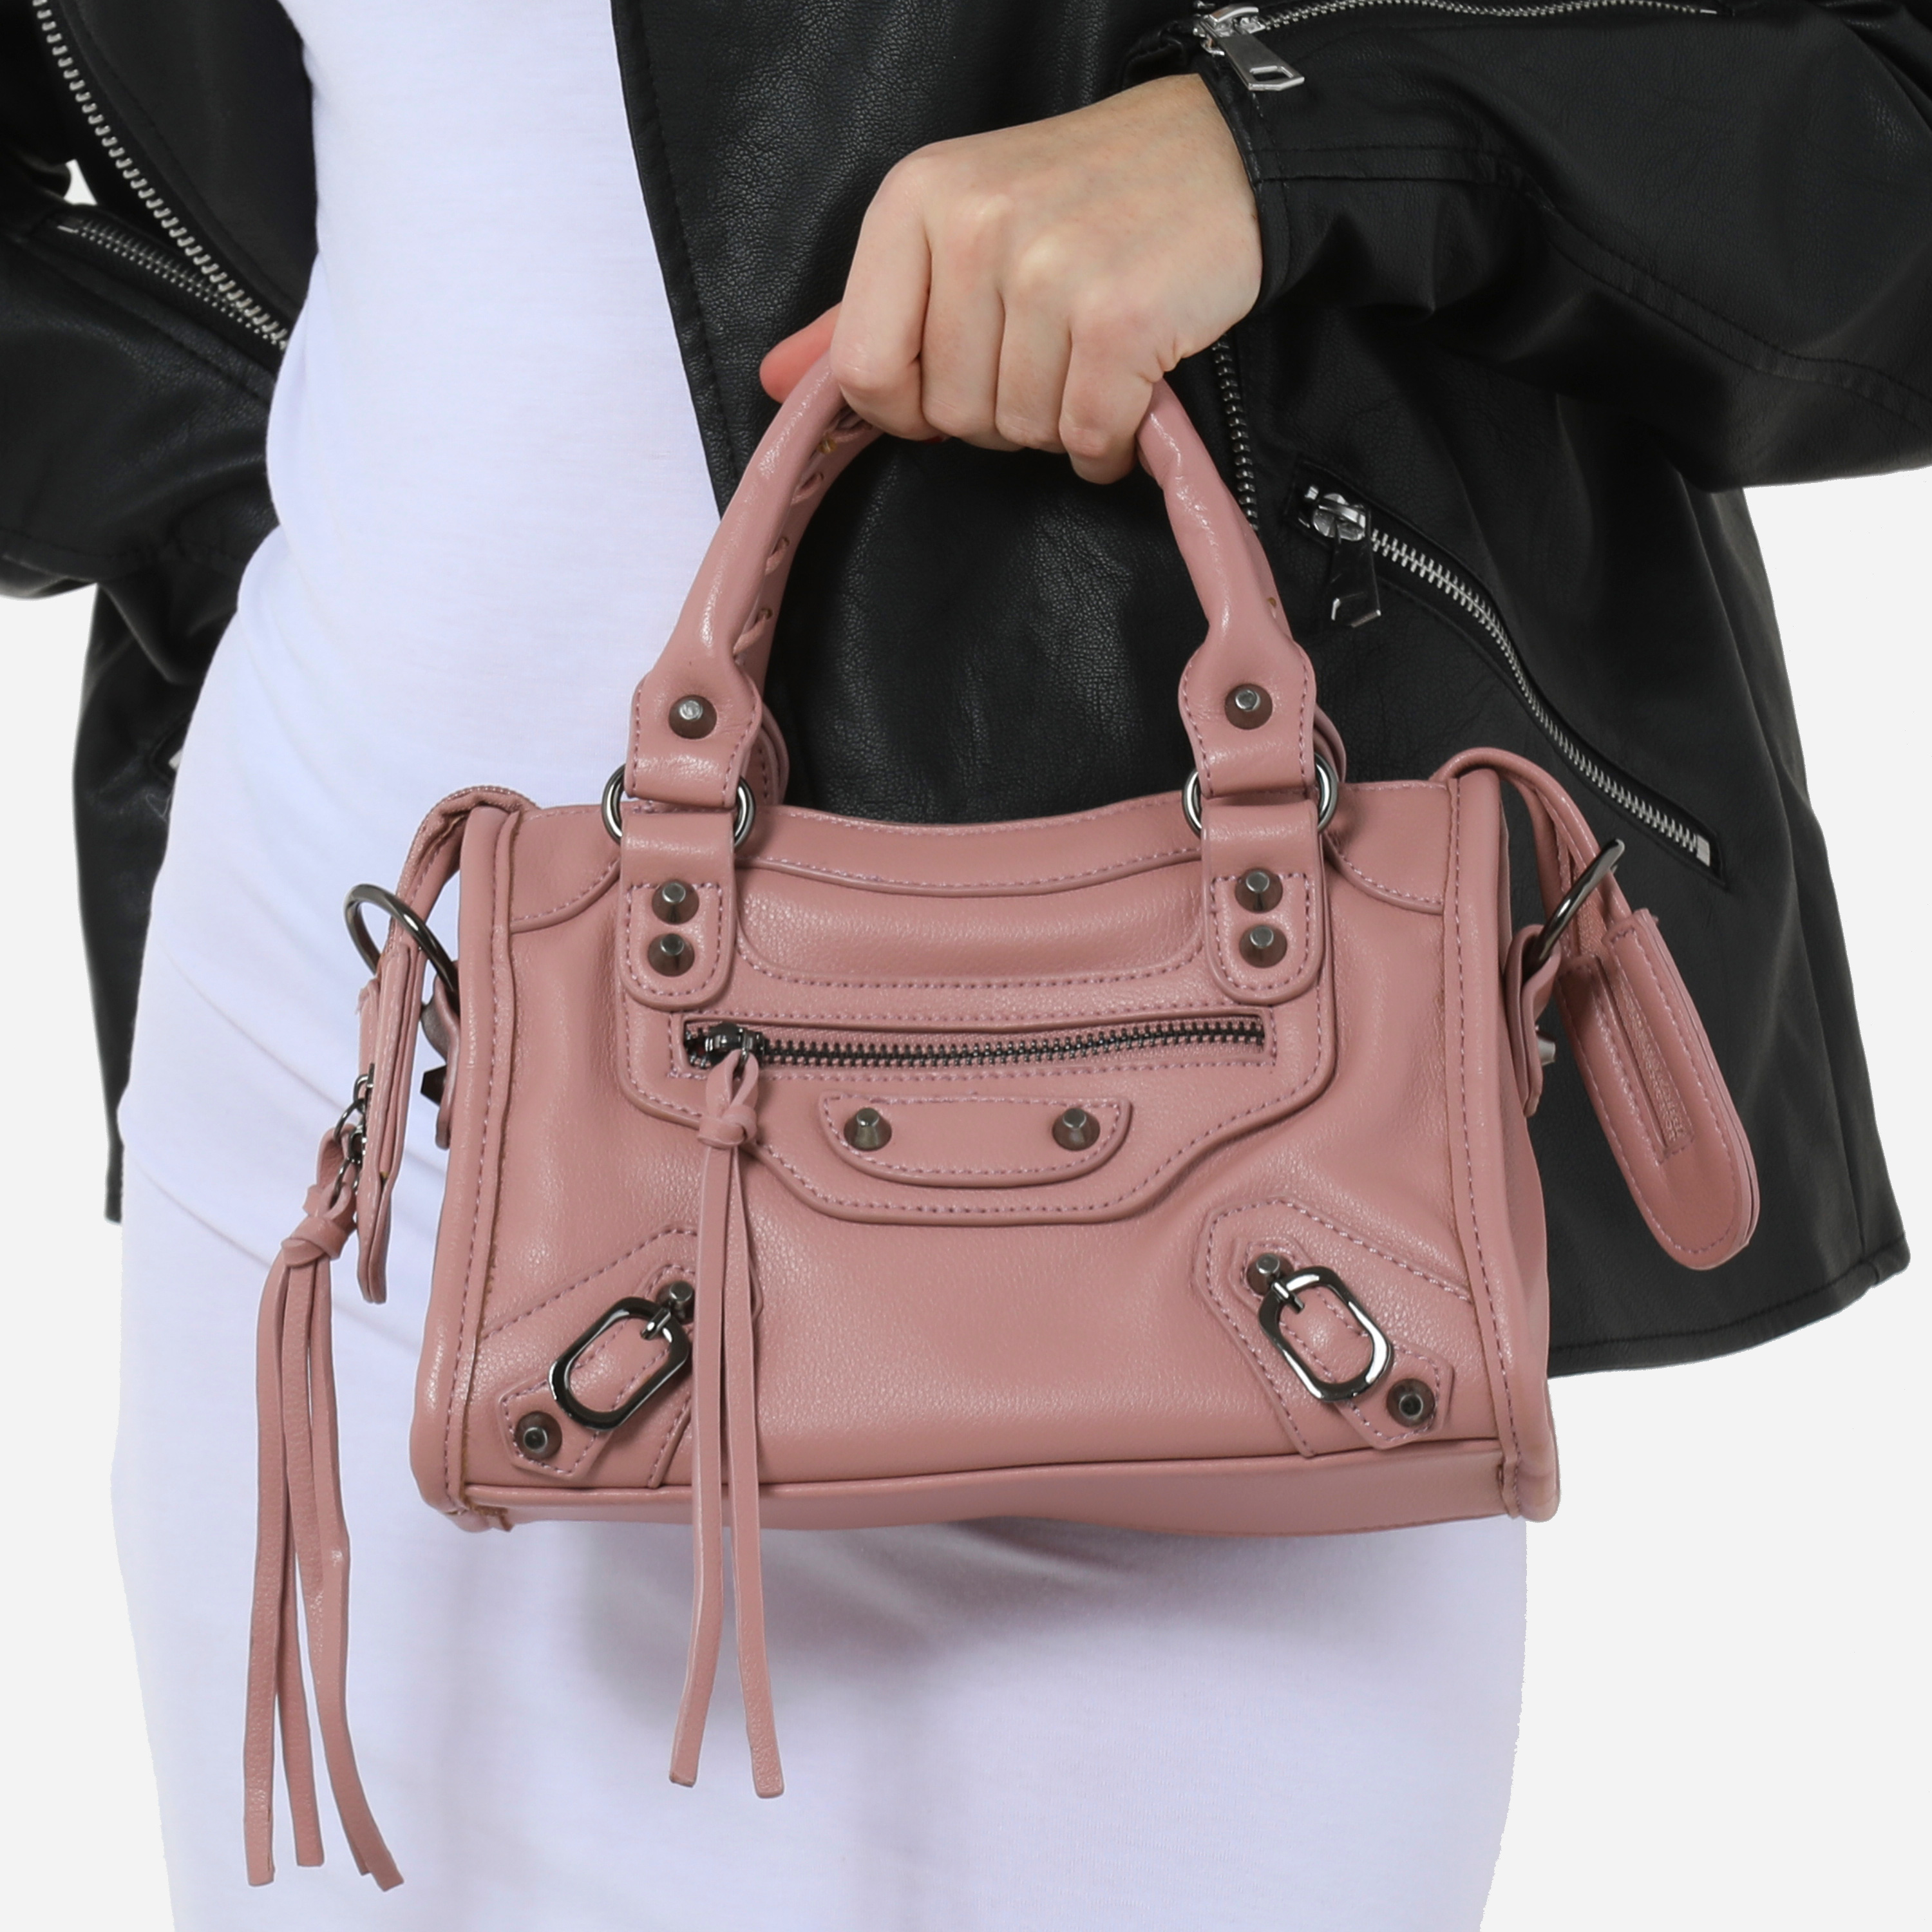 Buckle Detail Mini City Bag In Pink Faux Leather